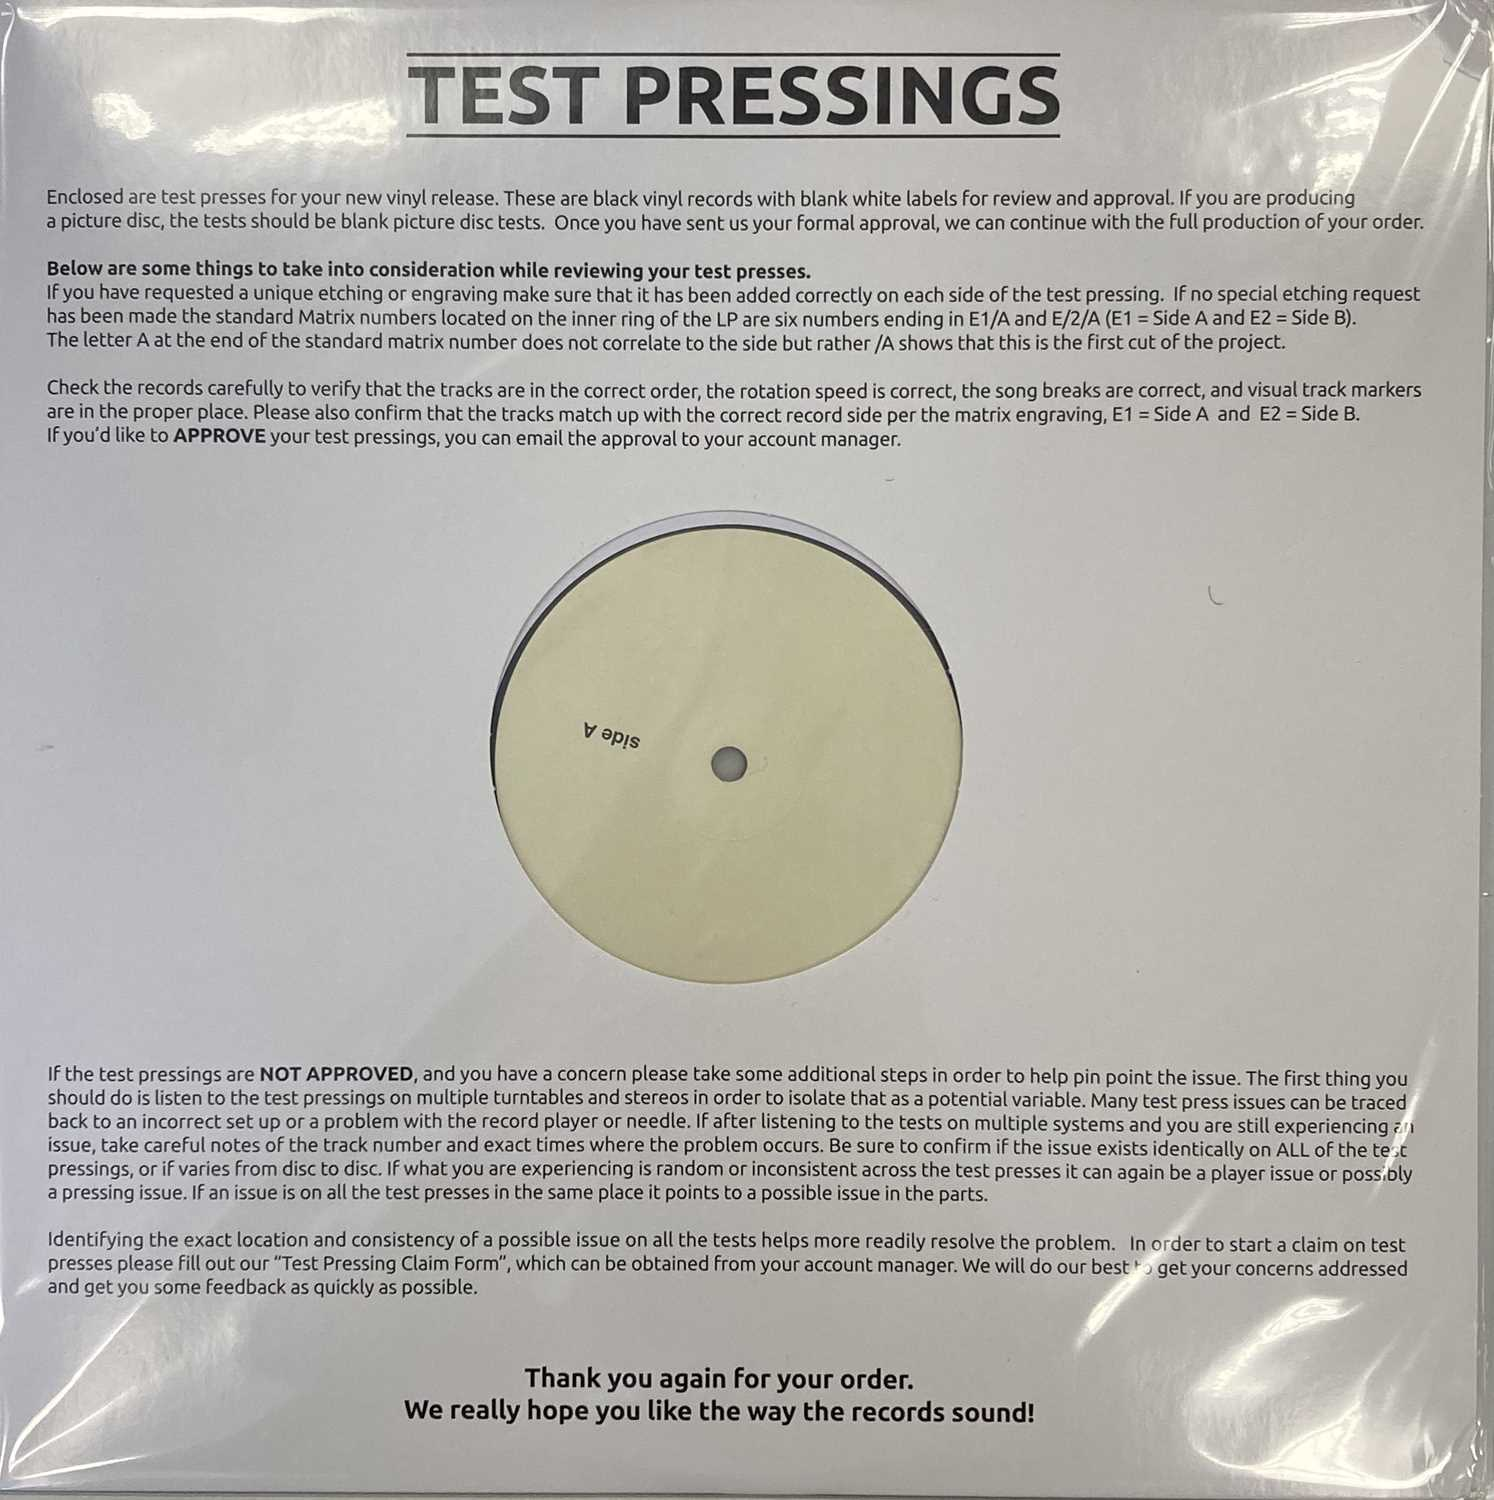 KEVIN ROWLAND - MY BEAUTY LP (2020 WHITE LABEL TEST PRESSING) - Image 2 of 2